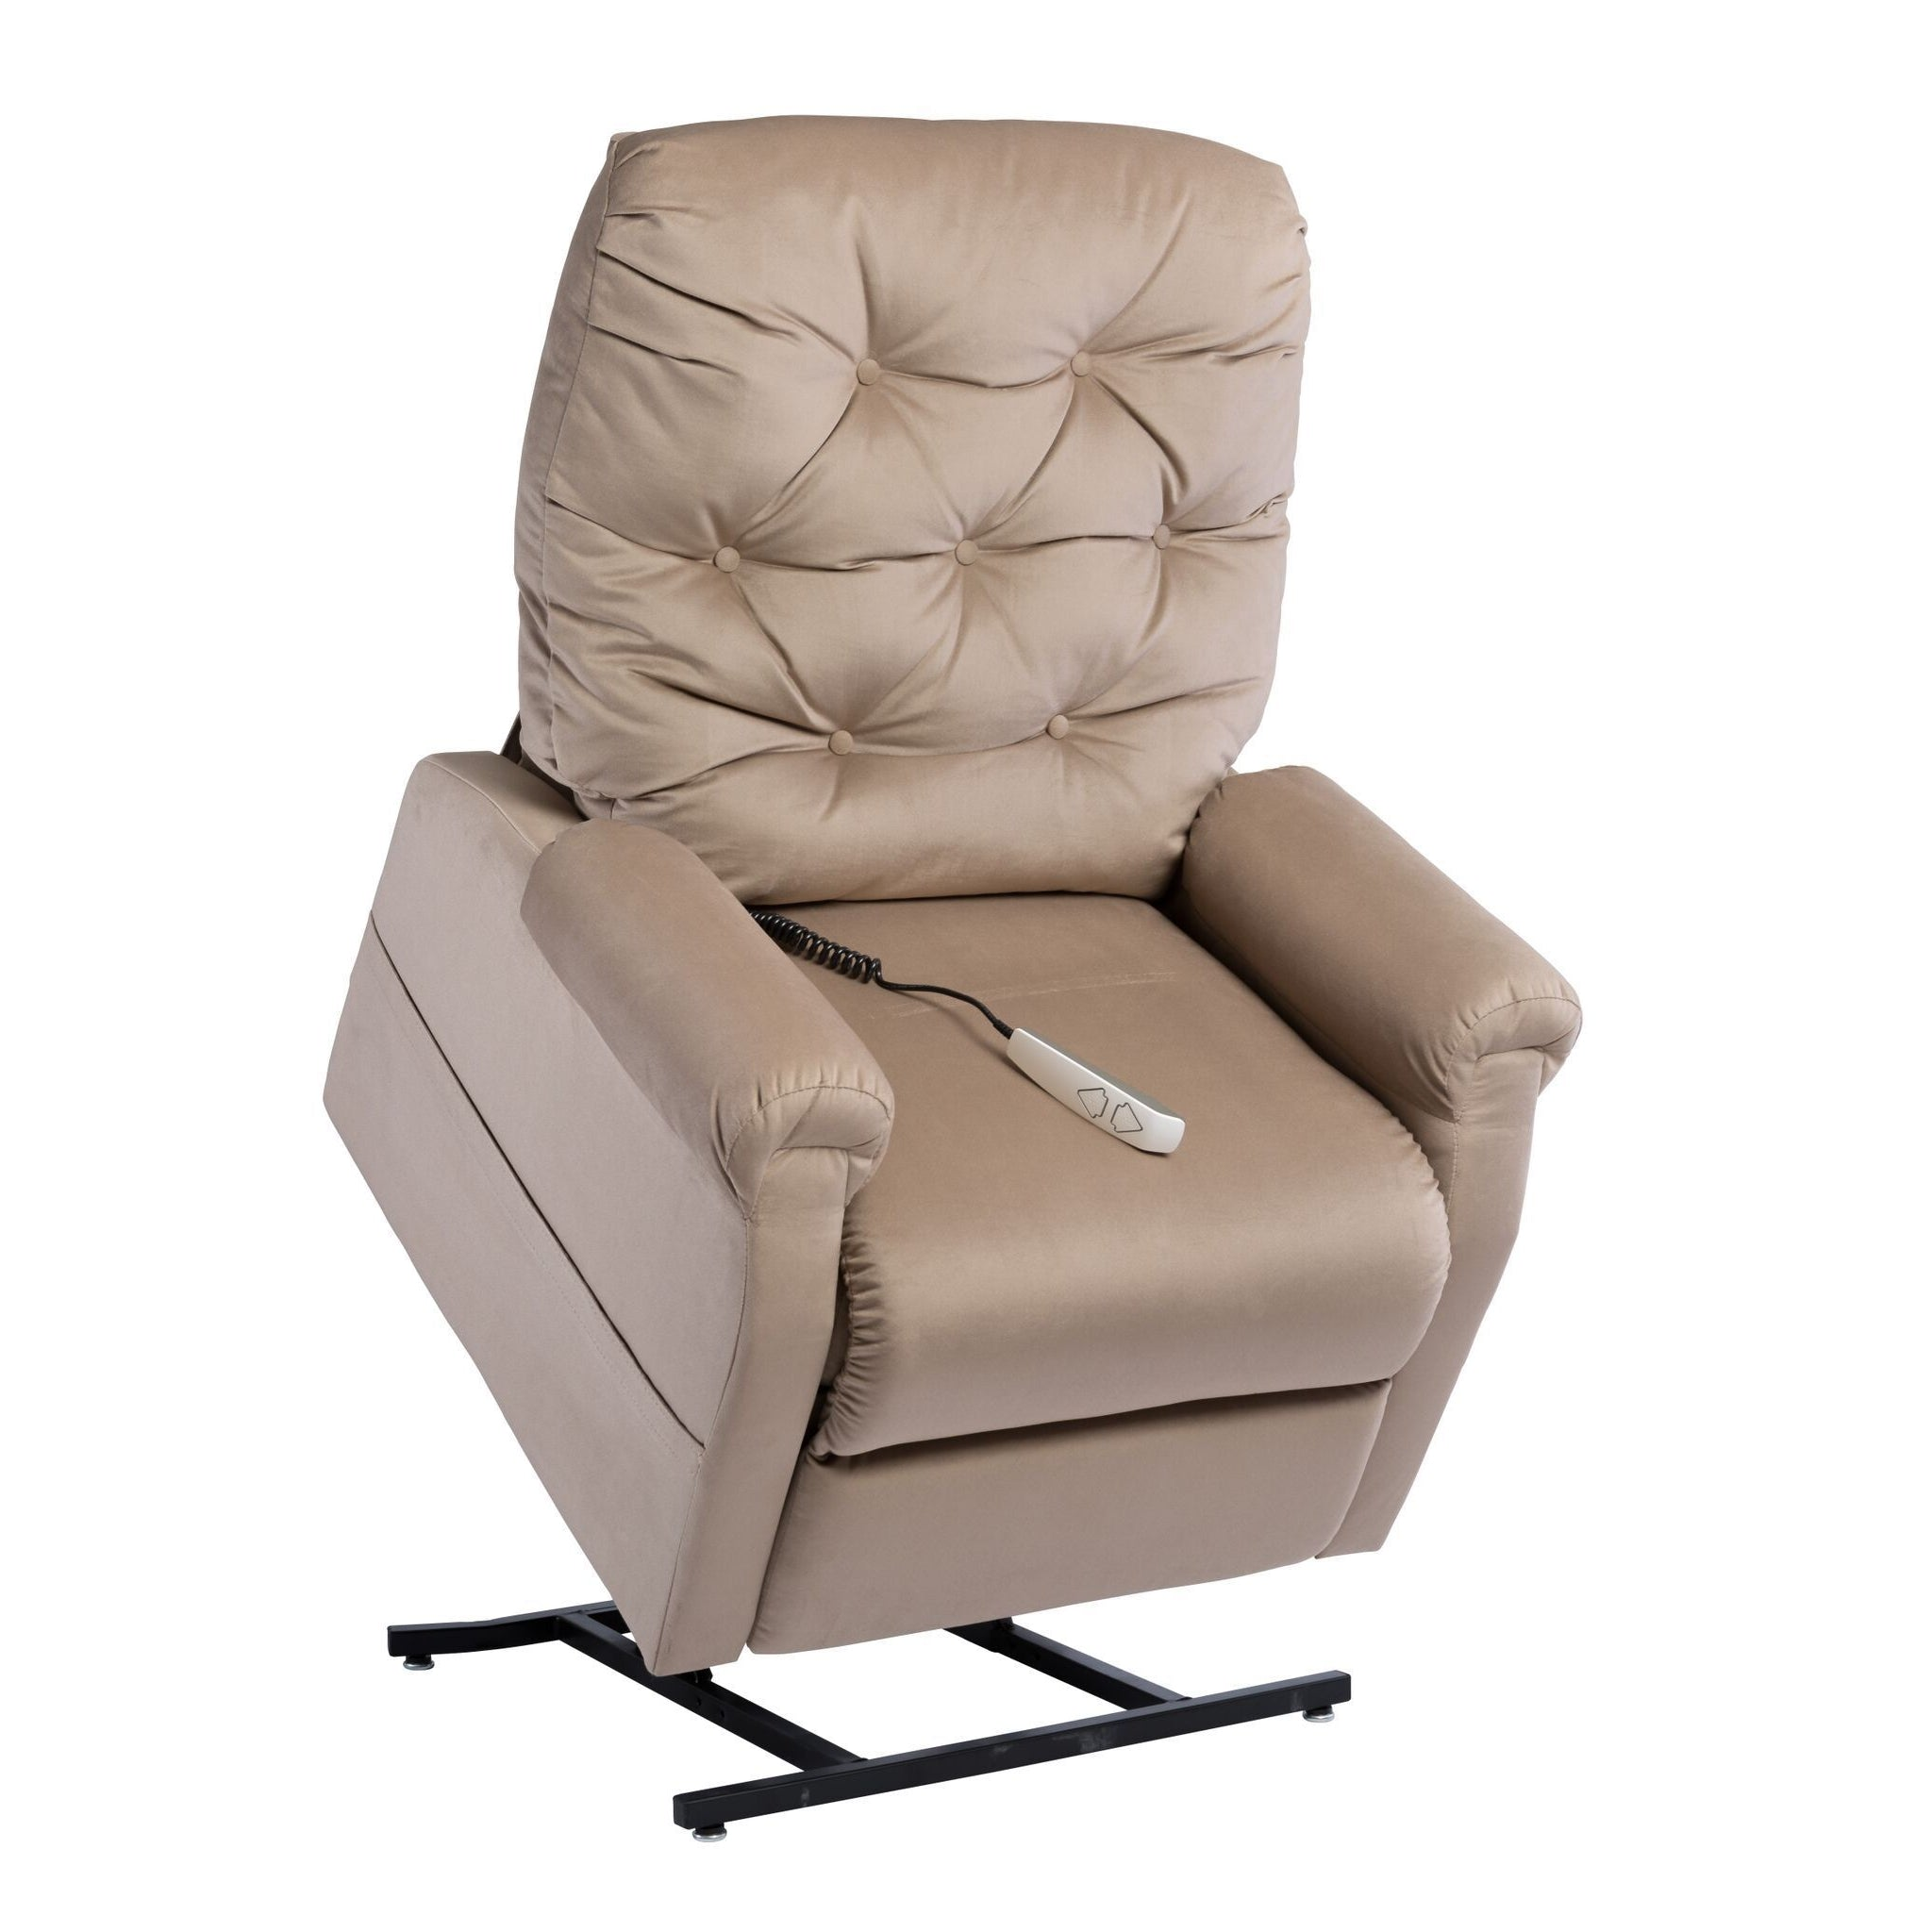 ramsey massage and lift item catnapper motion chair number with chairs recliner products recliners heat